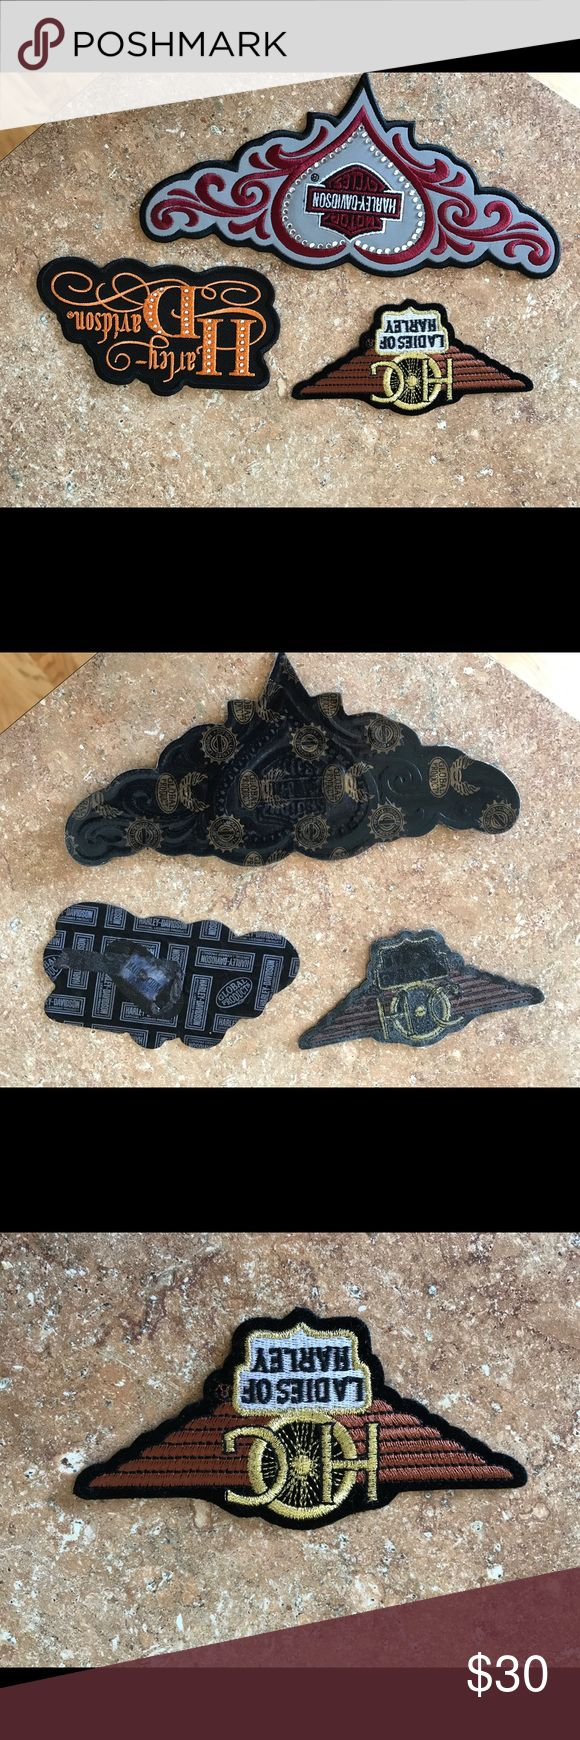 One Harley Davidson Patches,  new- only one patch One Harley Davidson Patches, brand new- this is for only one Harley Davidson patch! Harley-Davidson Accessories Hair Accessories